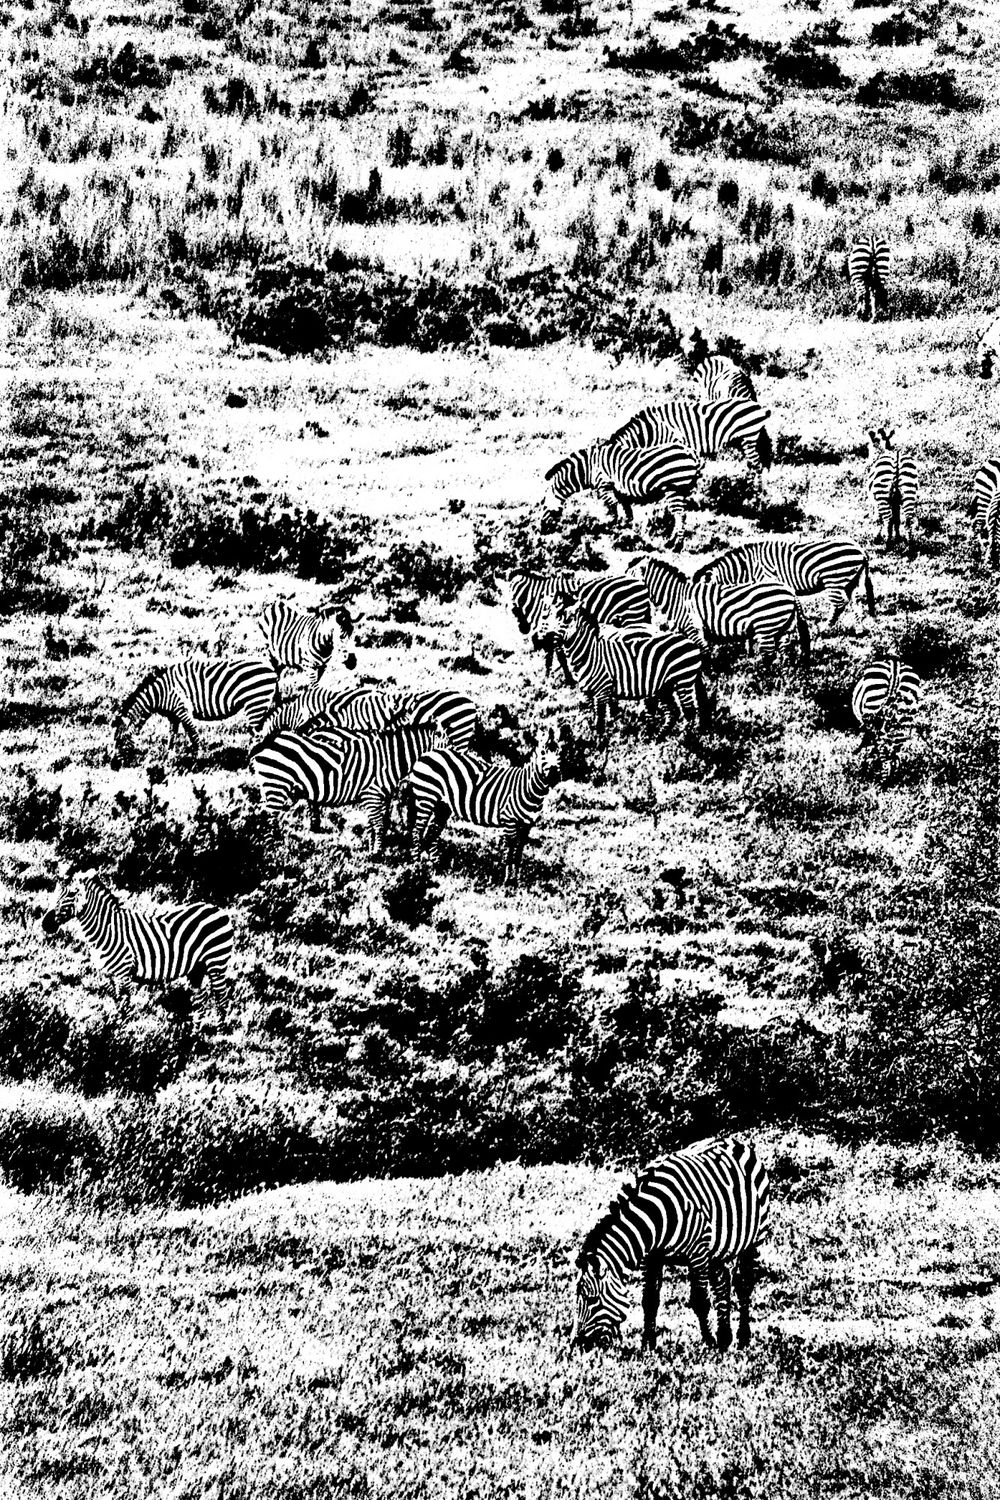 Zebra - 2, Ngorongoro 2016   Edition 1 of 2